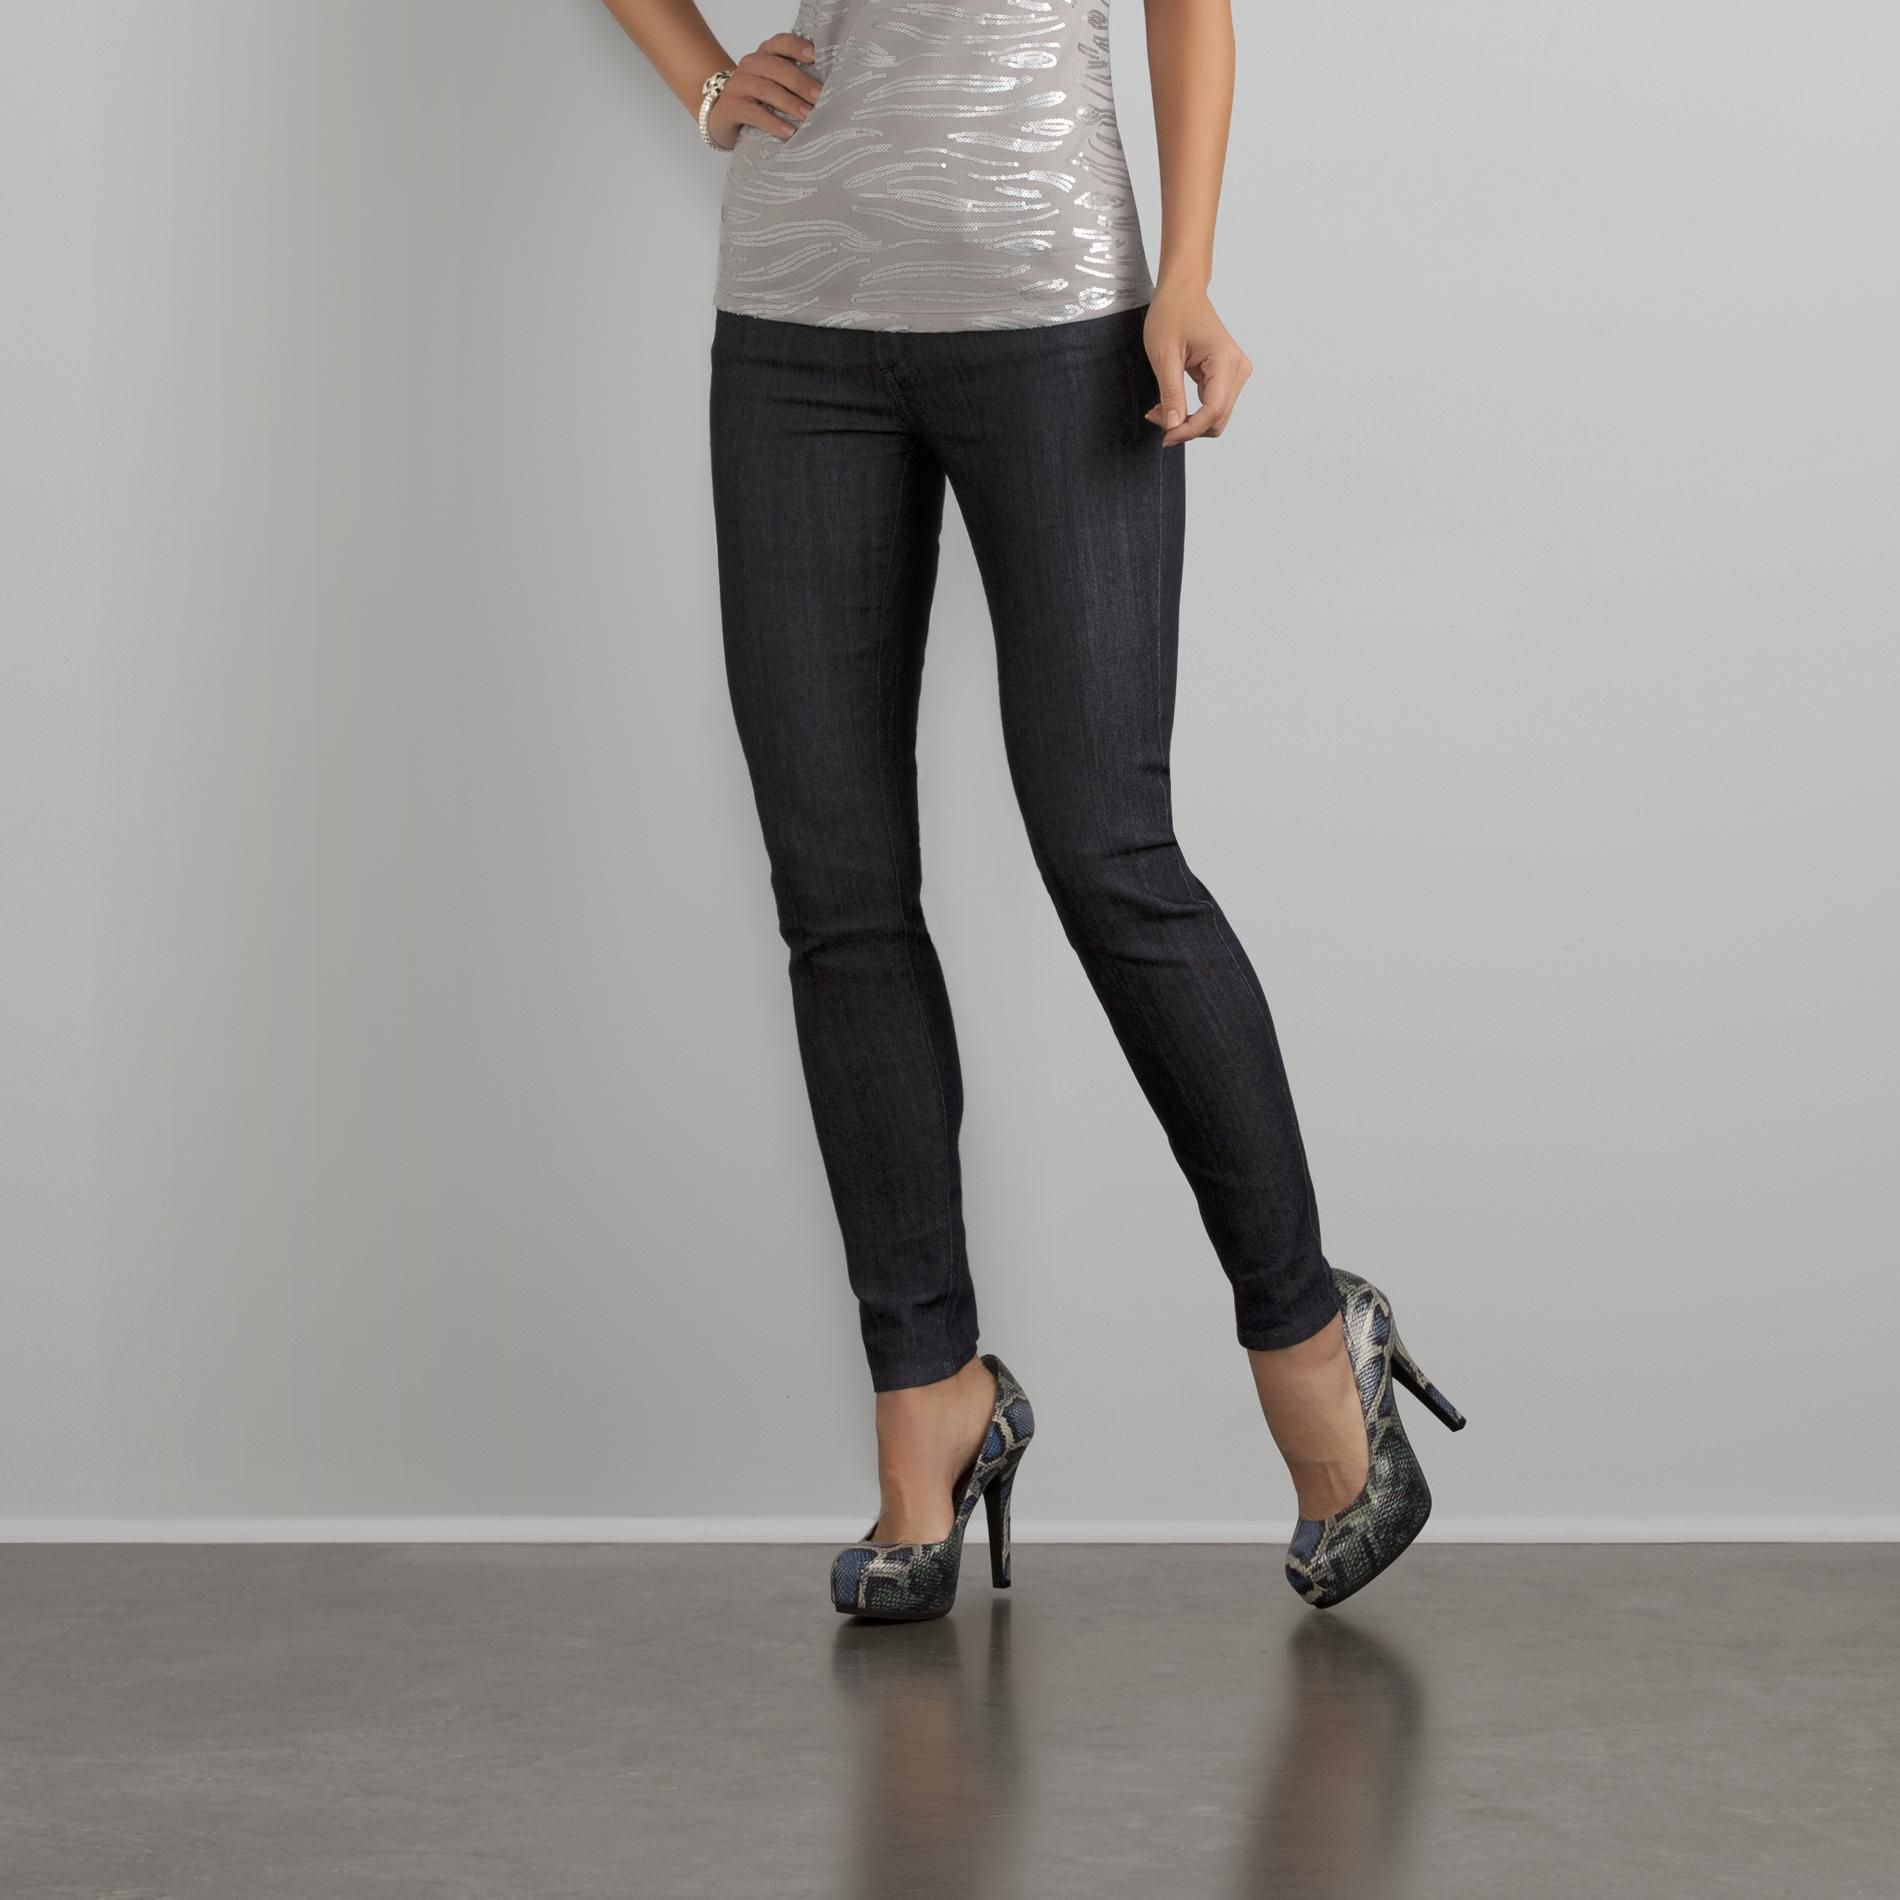 Sofia by Sofia Vergara Women's Five-Pocket Skinny Jeans at Kmart.com